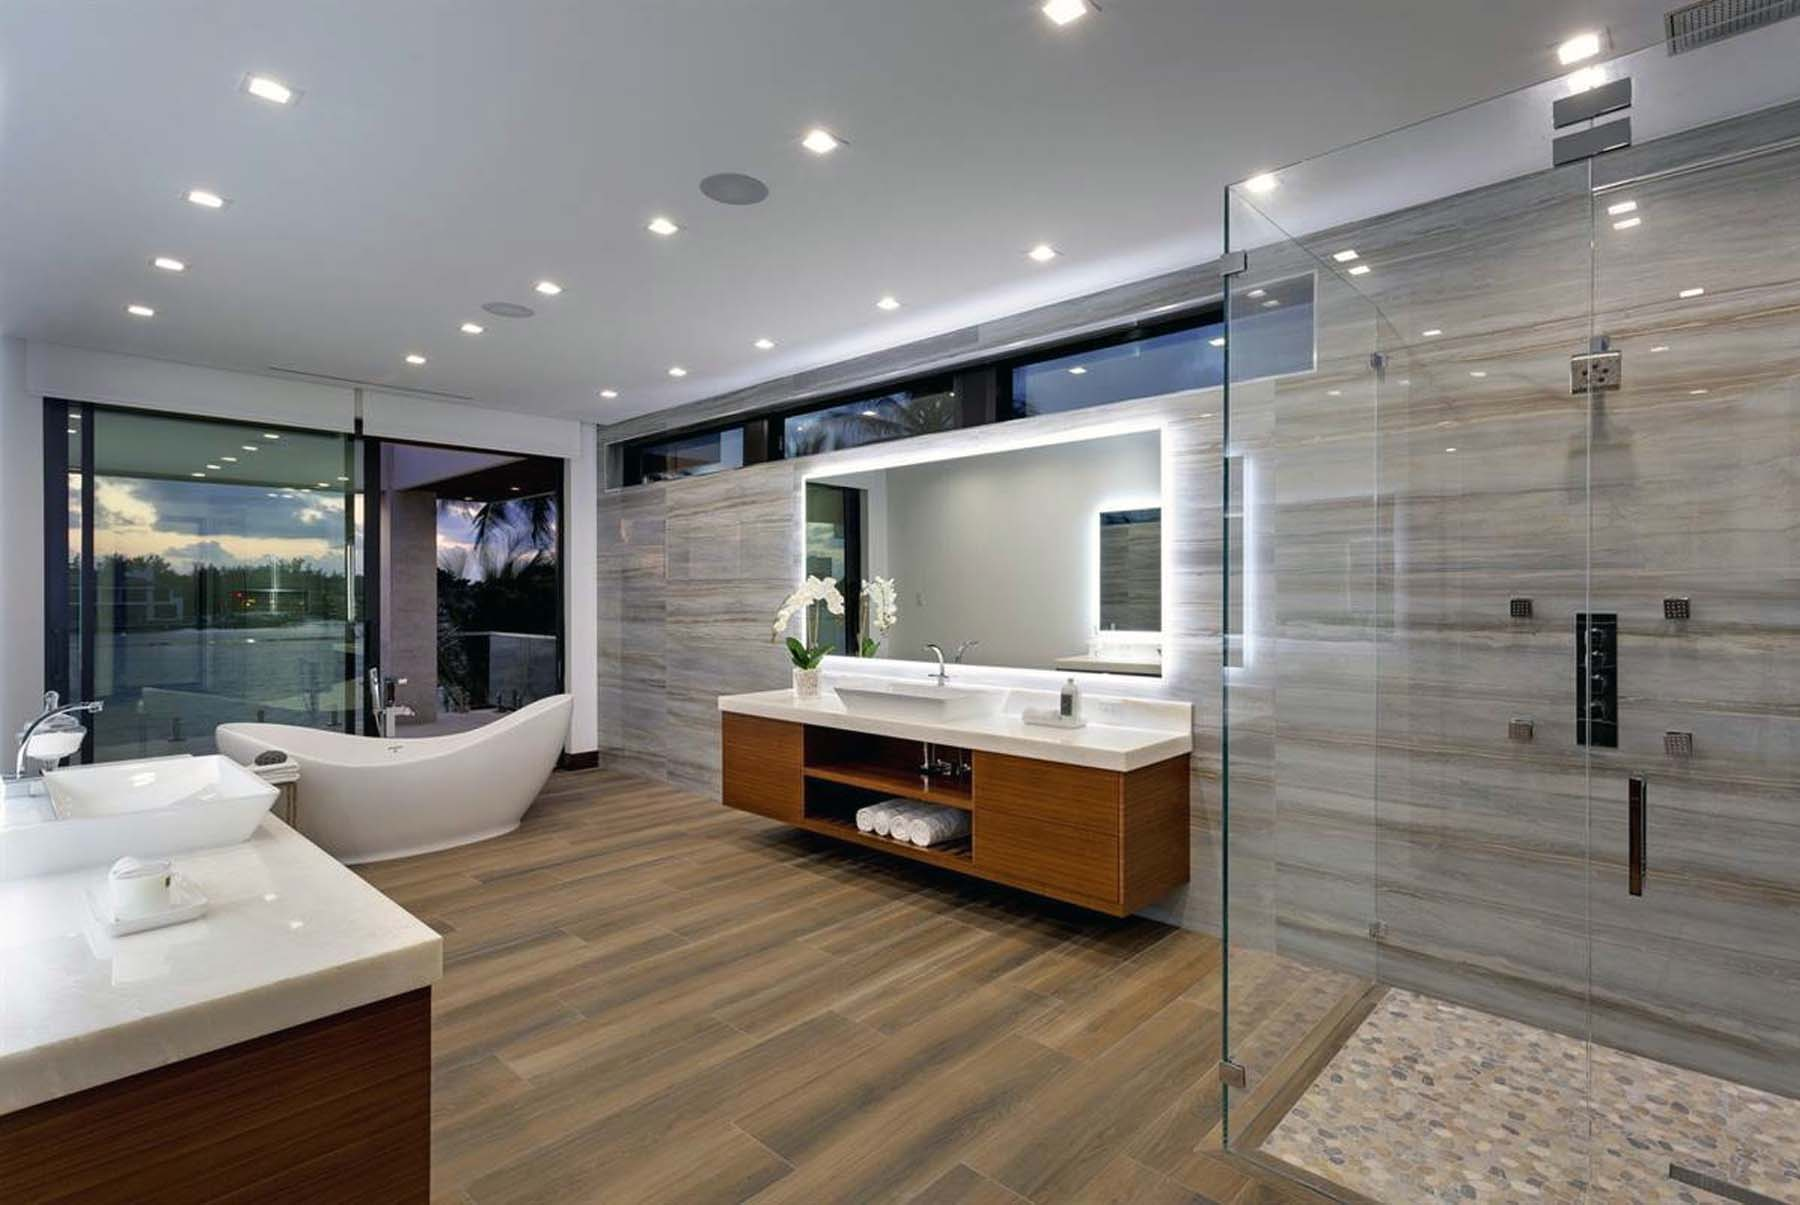 Modern bathroom design with large open floor plan and glass enclosed shower. White soaking tub.